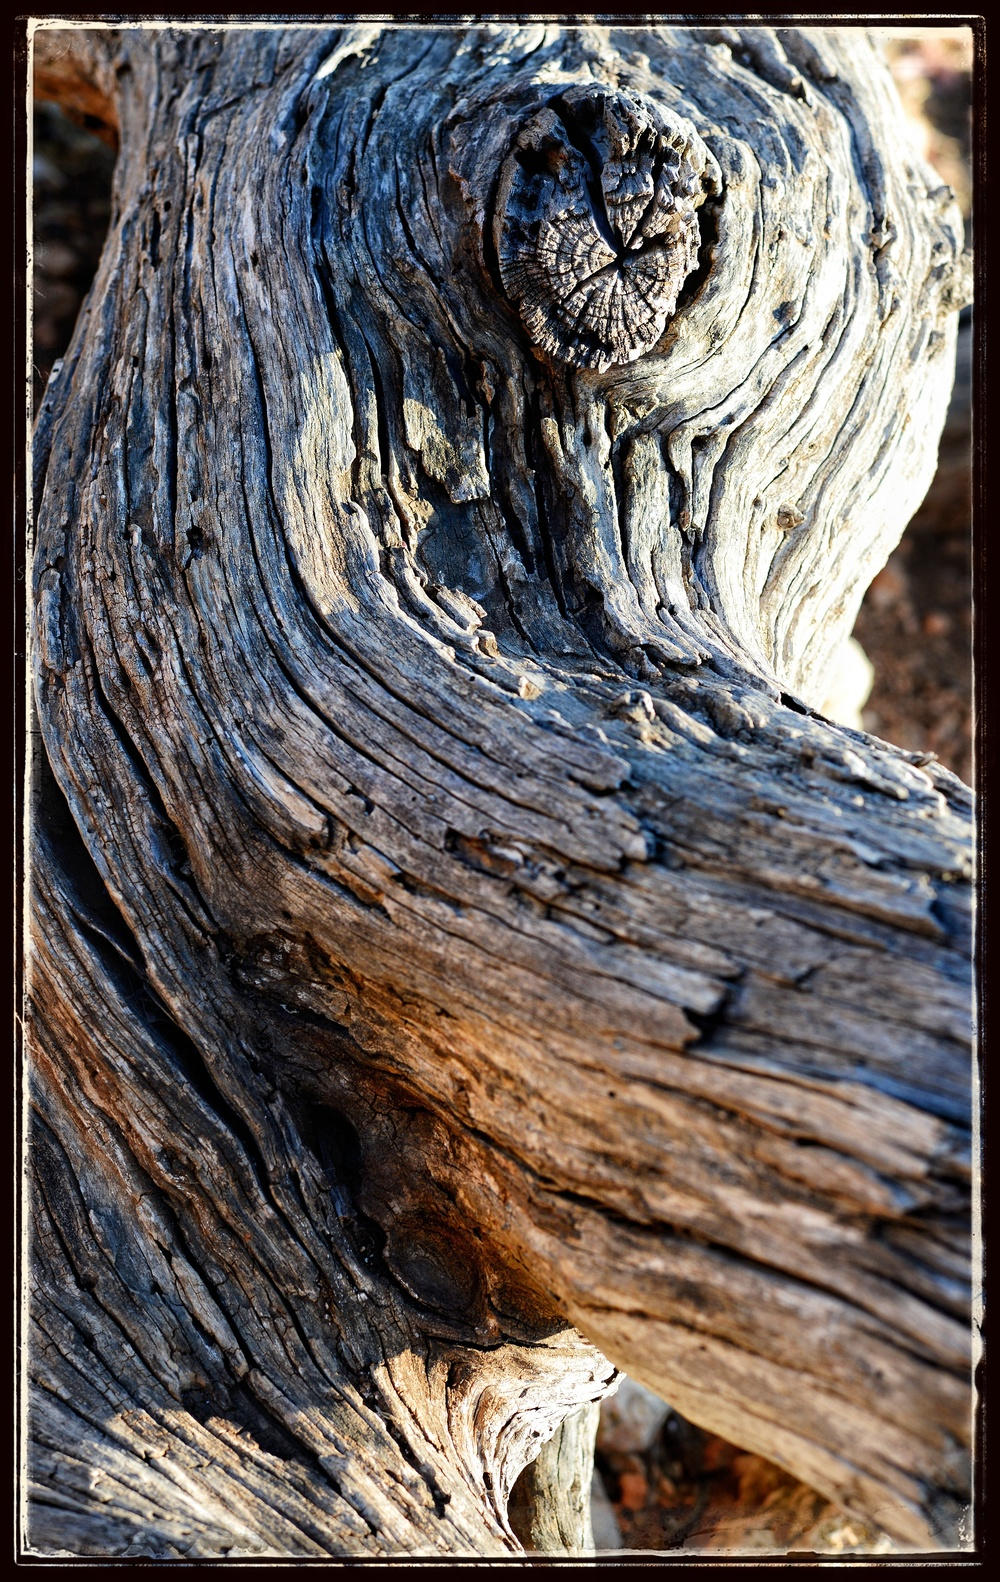 One of the dried logs.